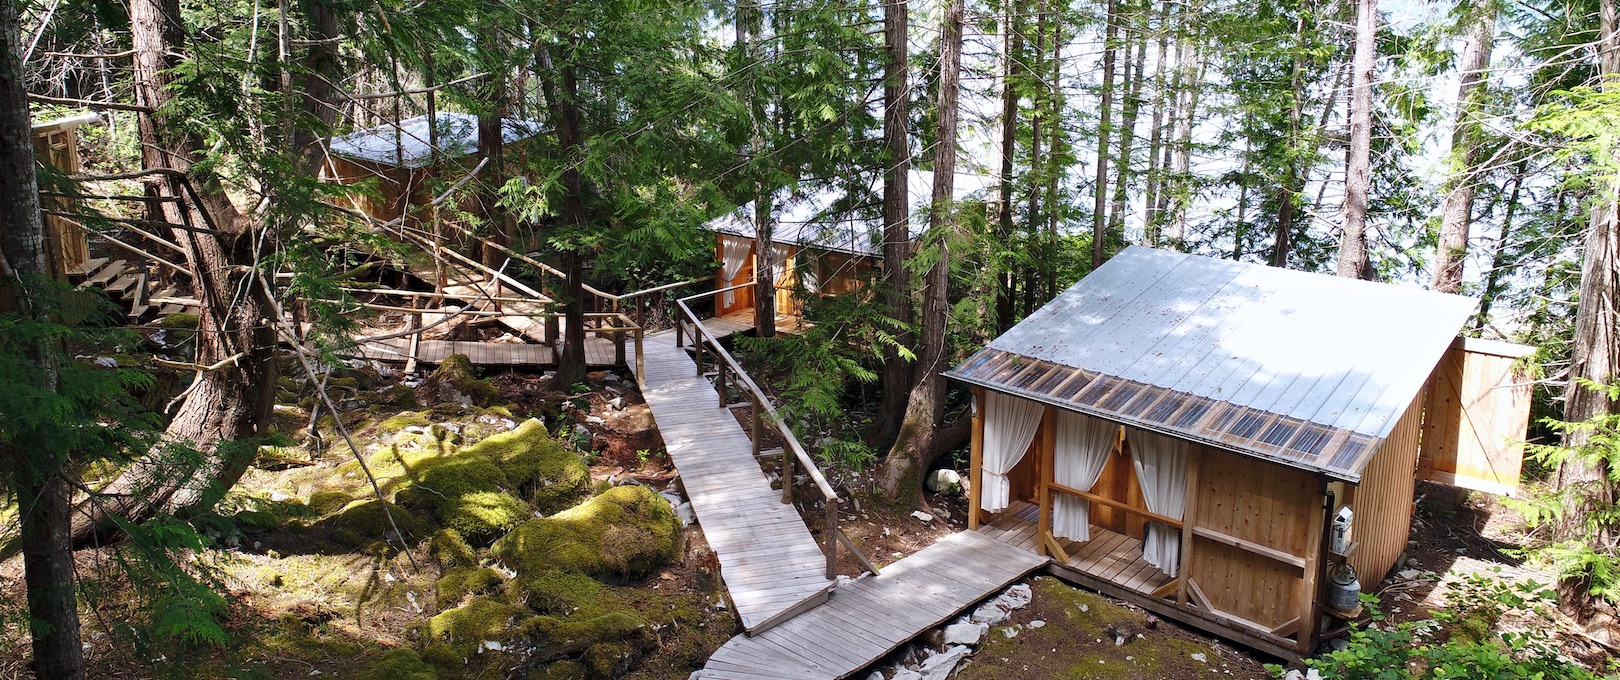 An aerial shot of 3 cabanas in the woods with a cedar boardwalk connecting them in Desolation Sound